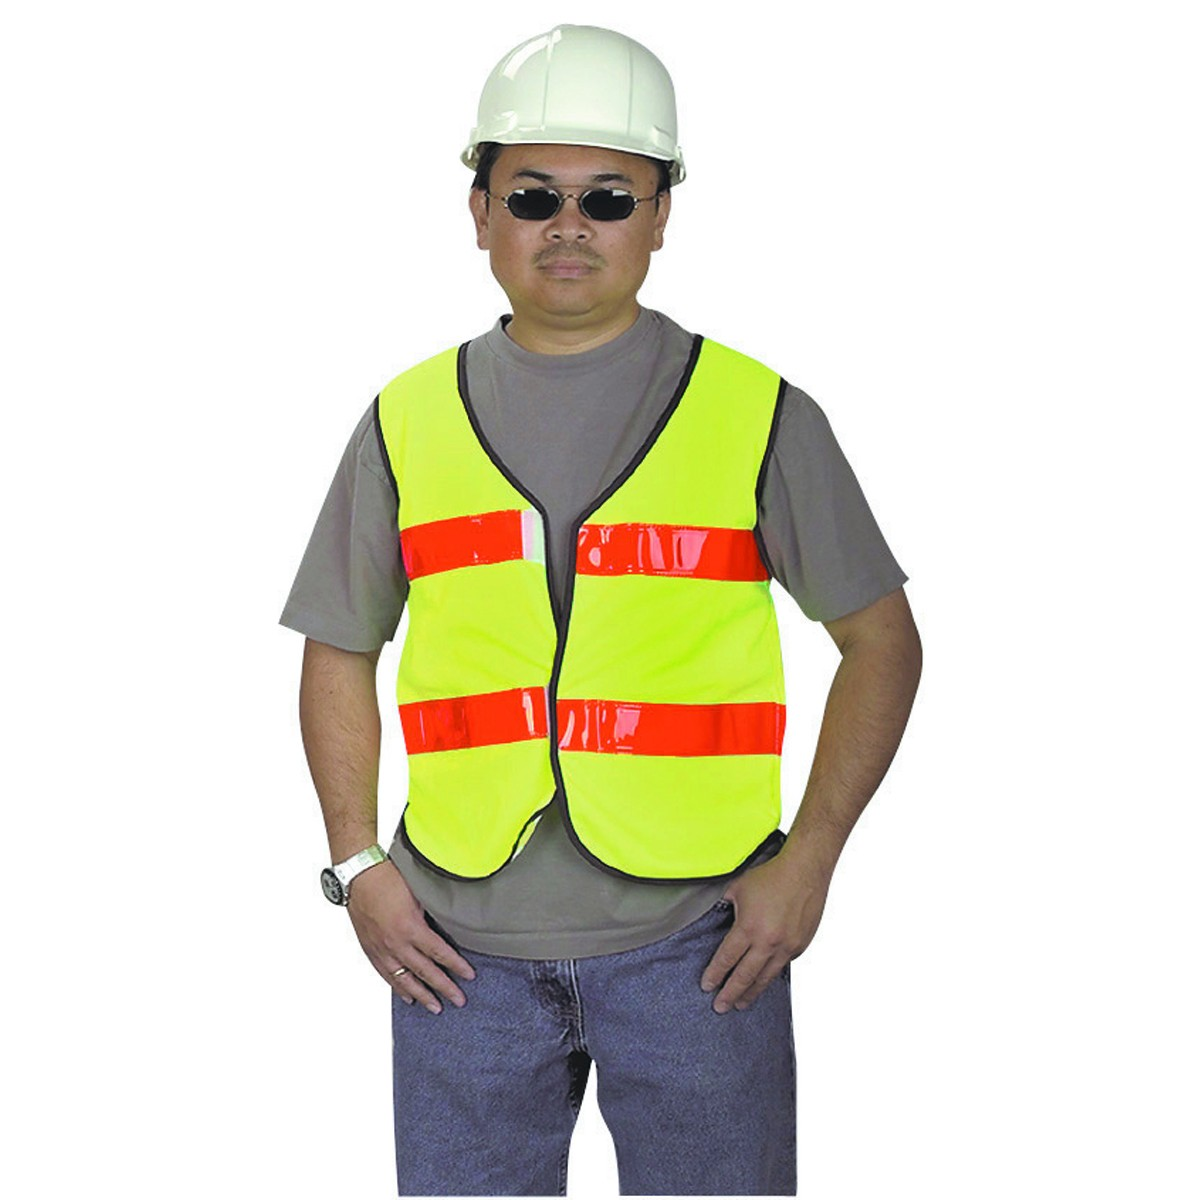 Bright Yellow Reflective Vest